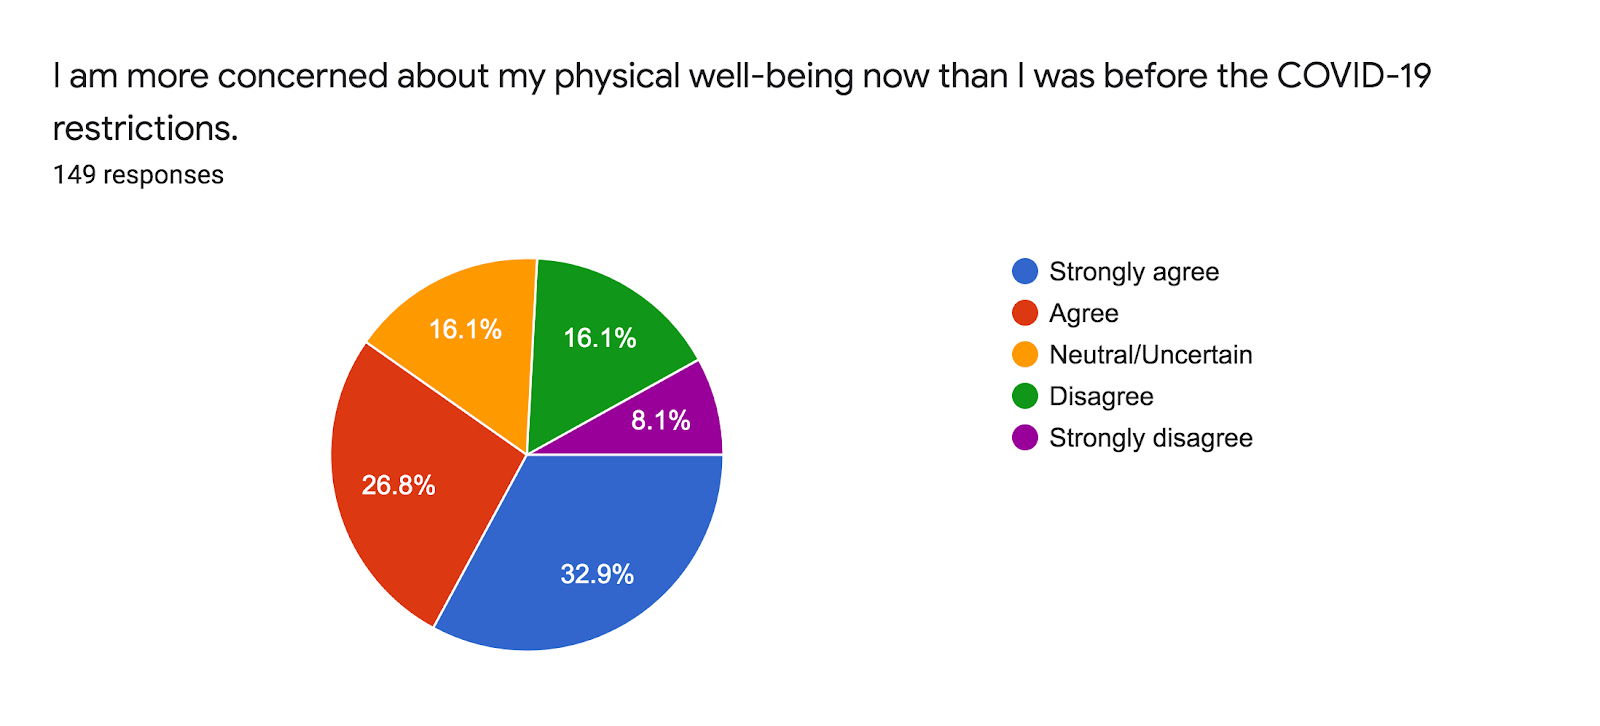 Forms response chart. Question title: I am more concerned about my physical well-being now than I was before the COVID-19 restrictions.. Number of responses: 149 responses.